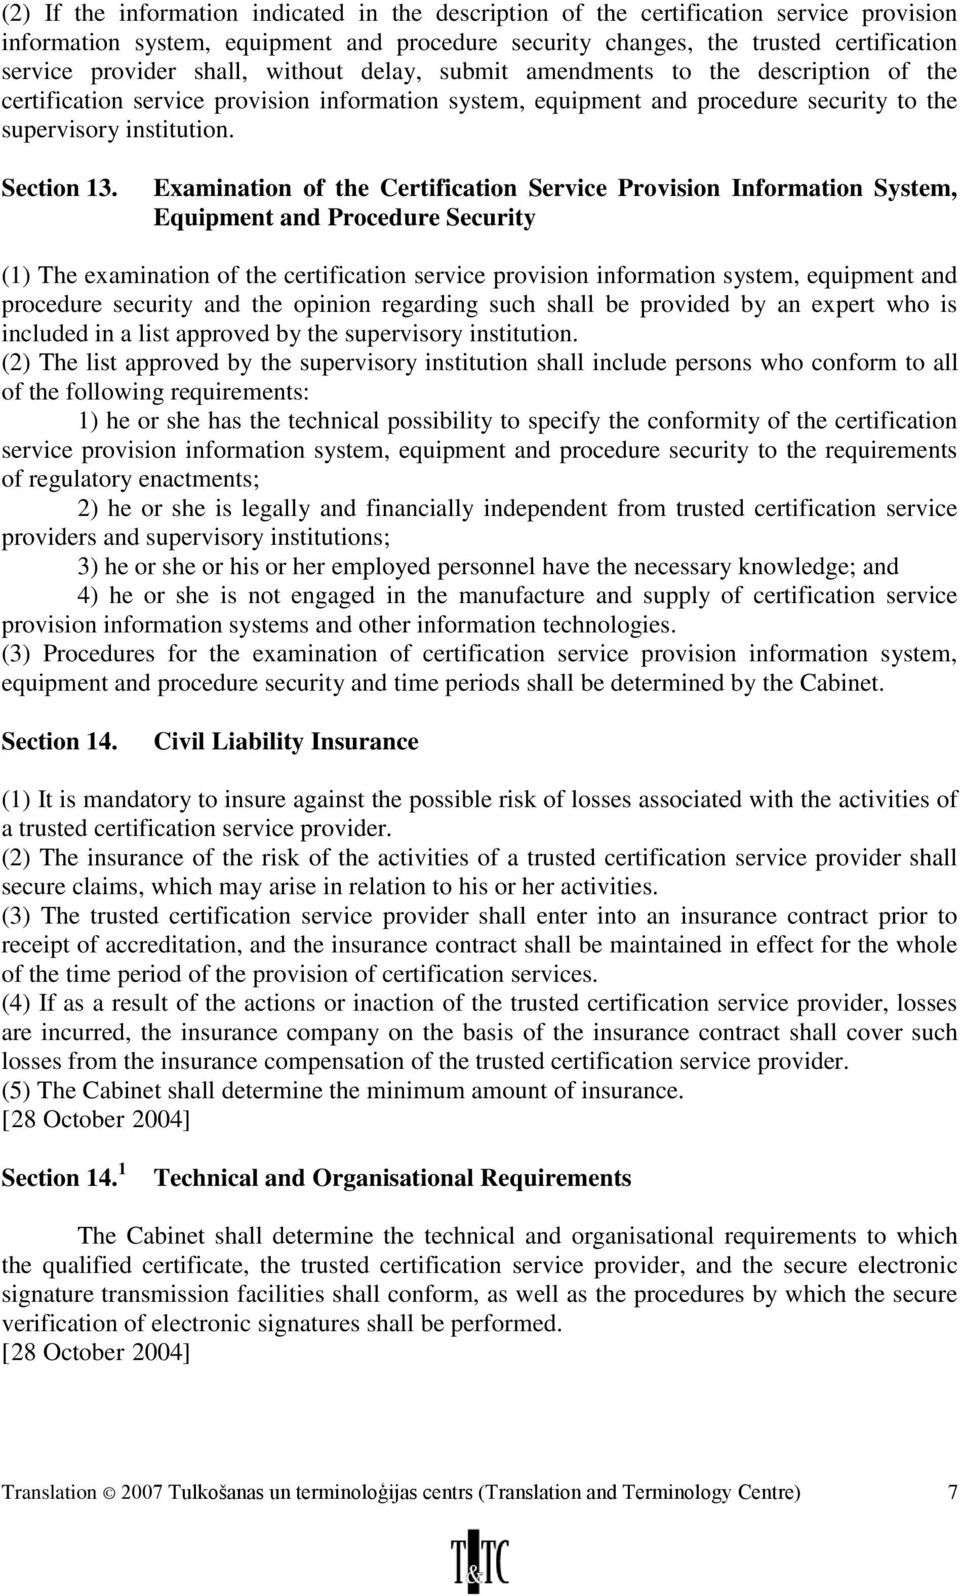 Examination of the Certification Service Provision Information System, Equipment and Procedure Security (1) The examination of the certification service provision information system, equipment and